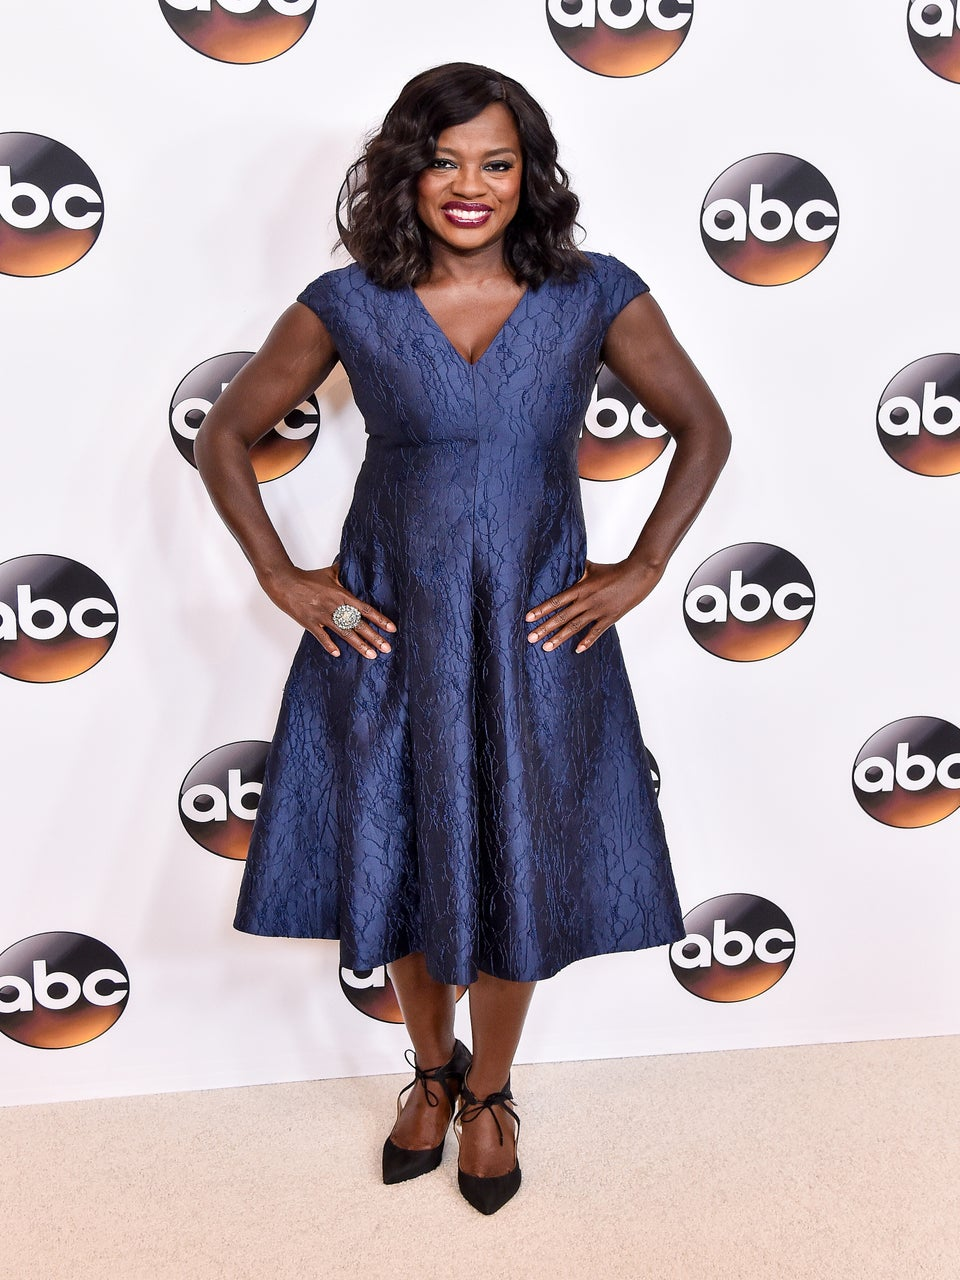 Look of the Day: Viola Davis is the Epitome of Class in Chic Blue Frock